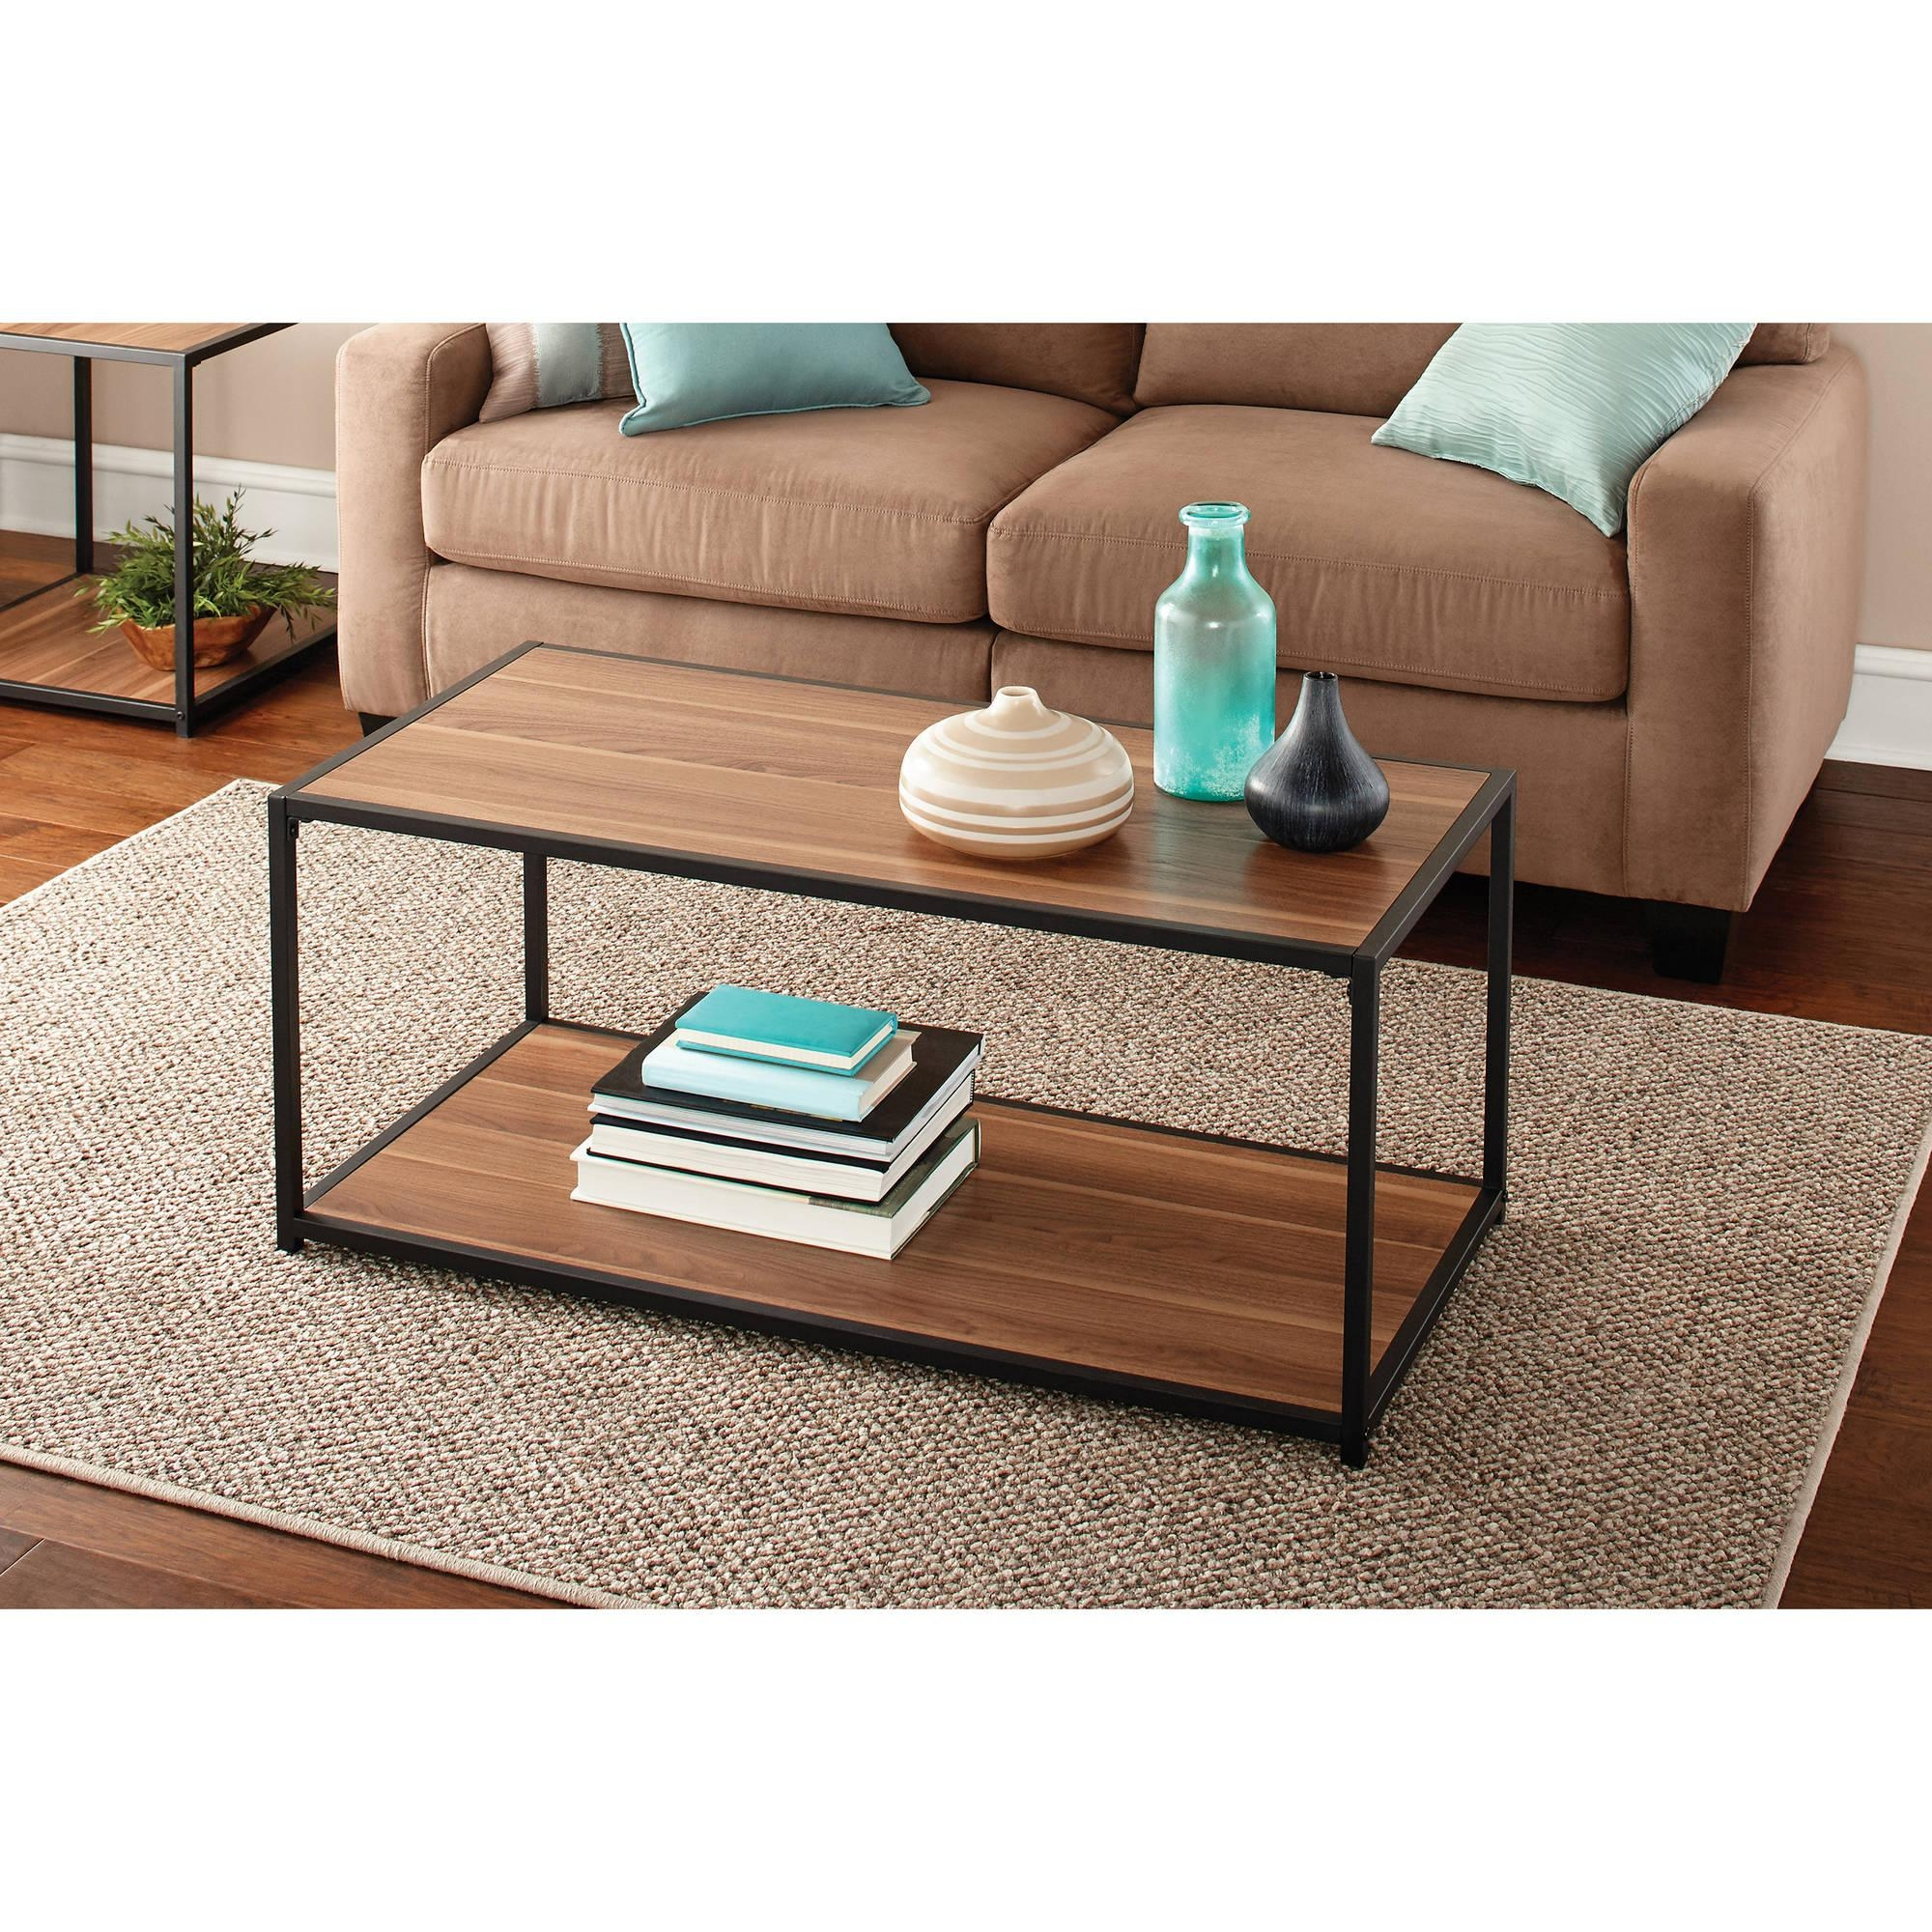 Mainstays Metro Coffee Table, Multiple Finishes – Walmart Intended For Mainstay Sofas (View 18 of 20)